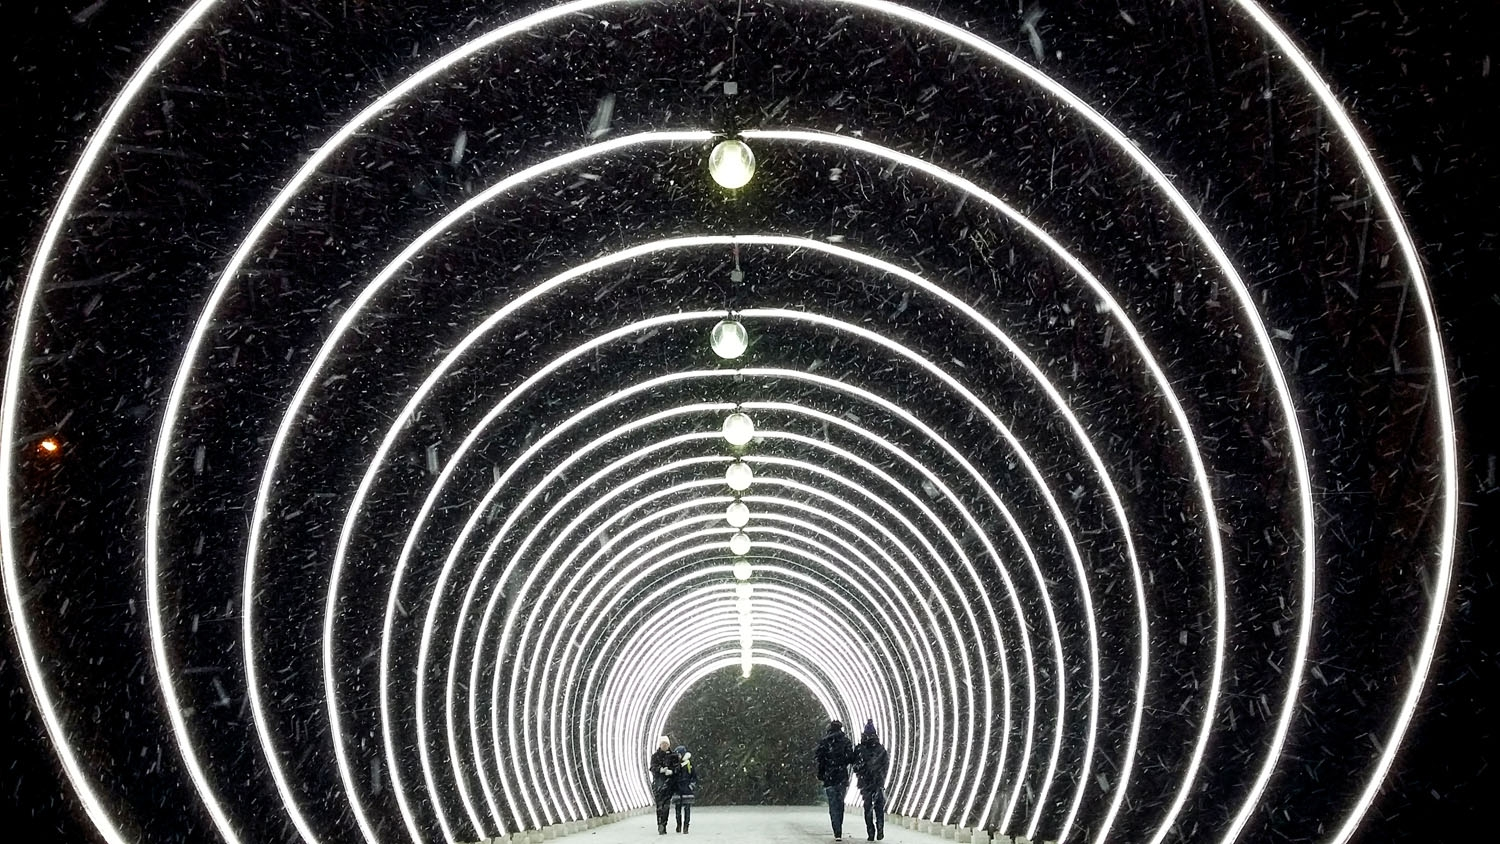 People walk under the major snowfall in central Moscow on January 8, 2018.